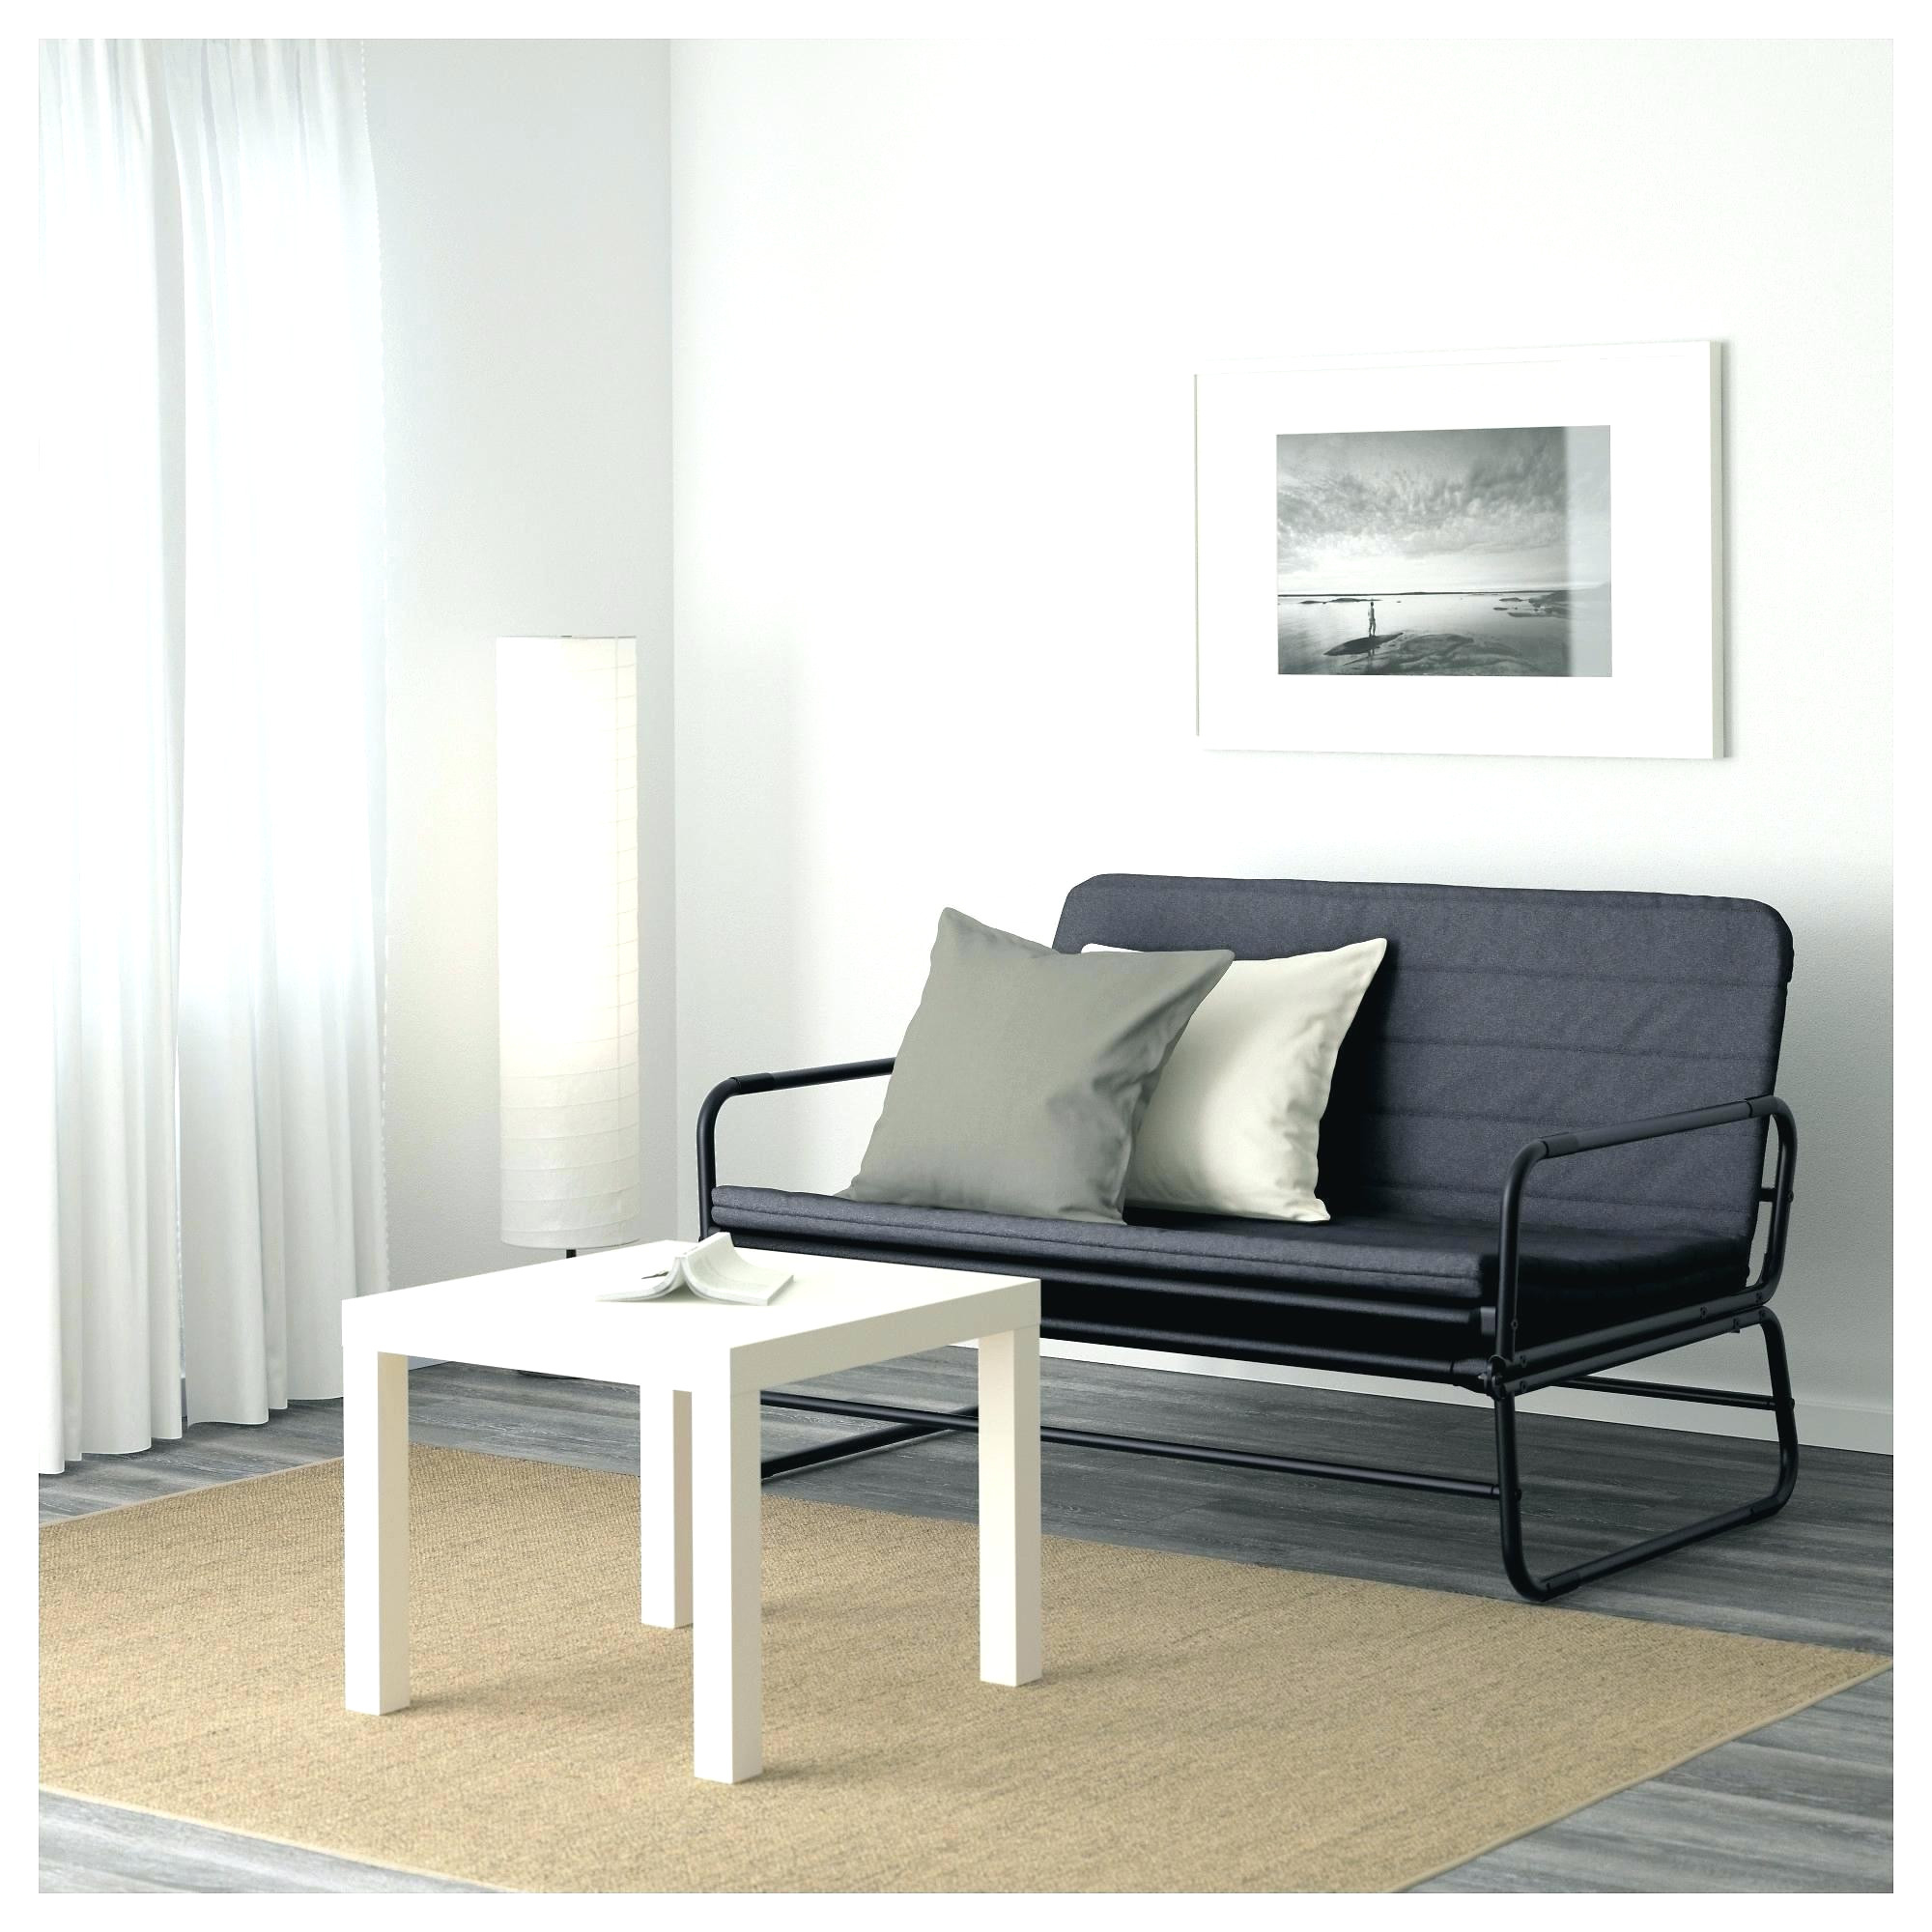 Canapé Friheten Ikea Meilleur De Photographie Housse Beddinge Ikea Ikea with Housse Beddinge Ikea Best